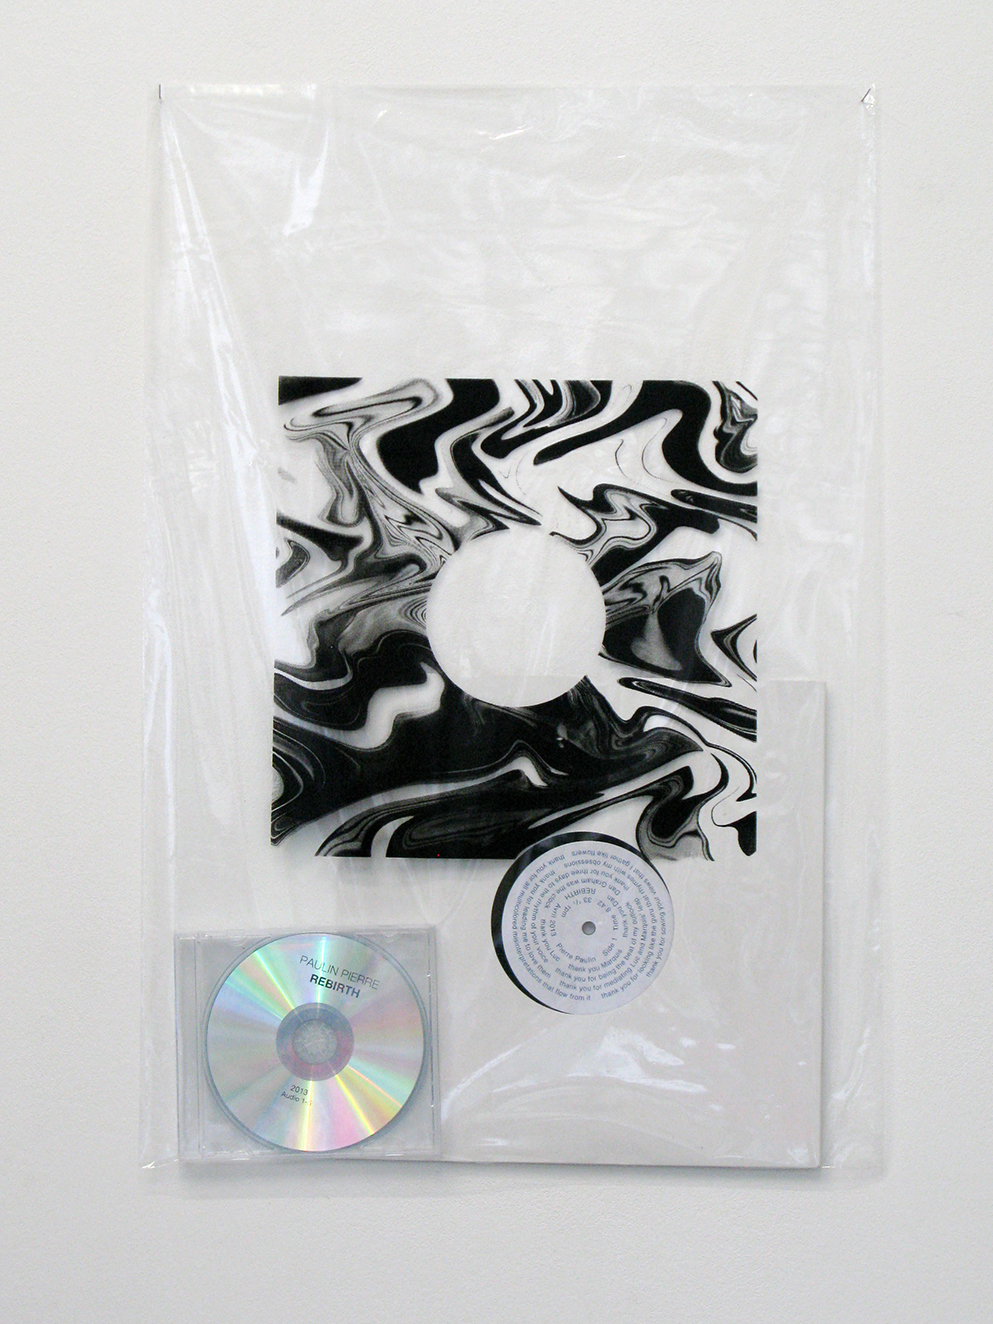 , 2013, Vinyl, cardboard, compact disc and silskscreen plastic, 60 x 40 cm, Edition of 3  + 1 AP